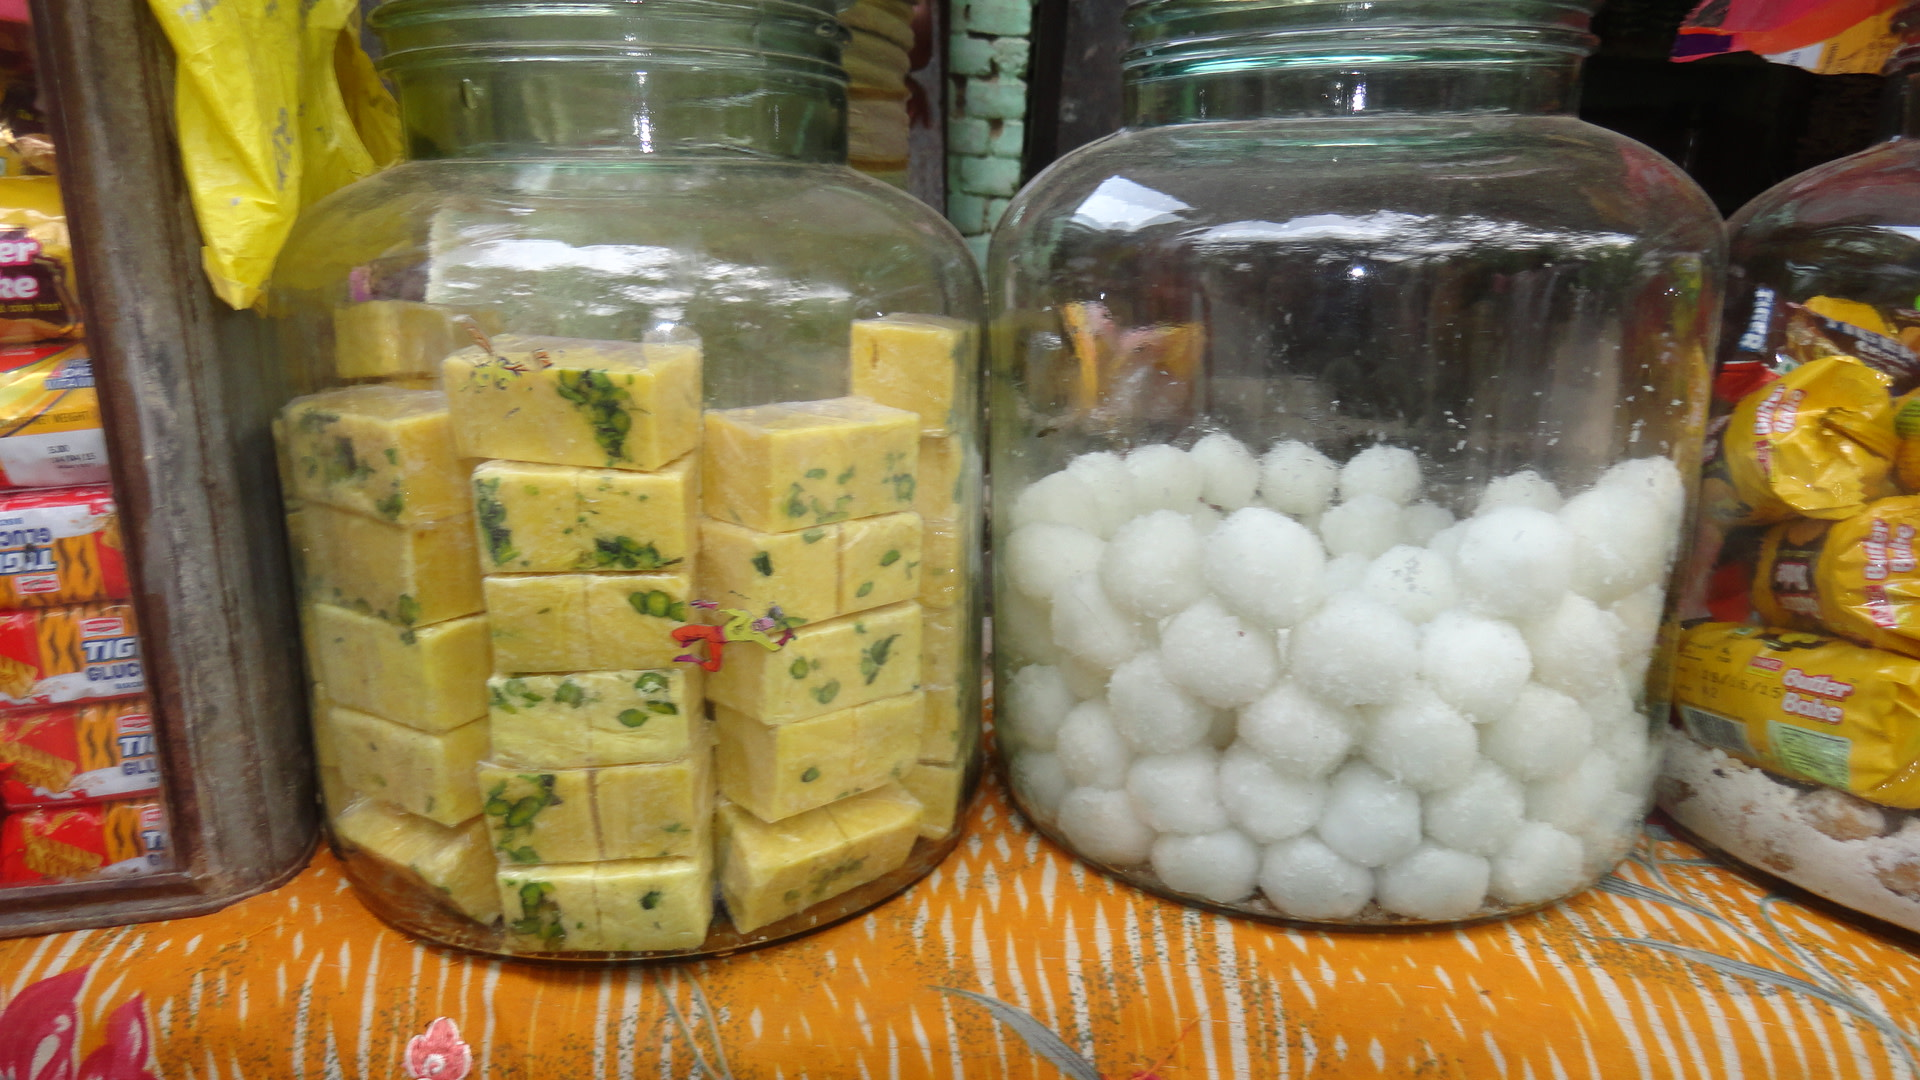 The sweets prepared by Rekha Devi